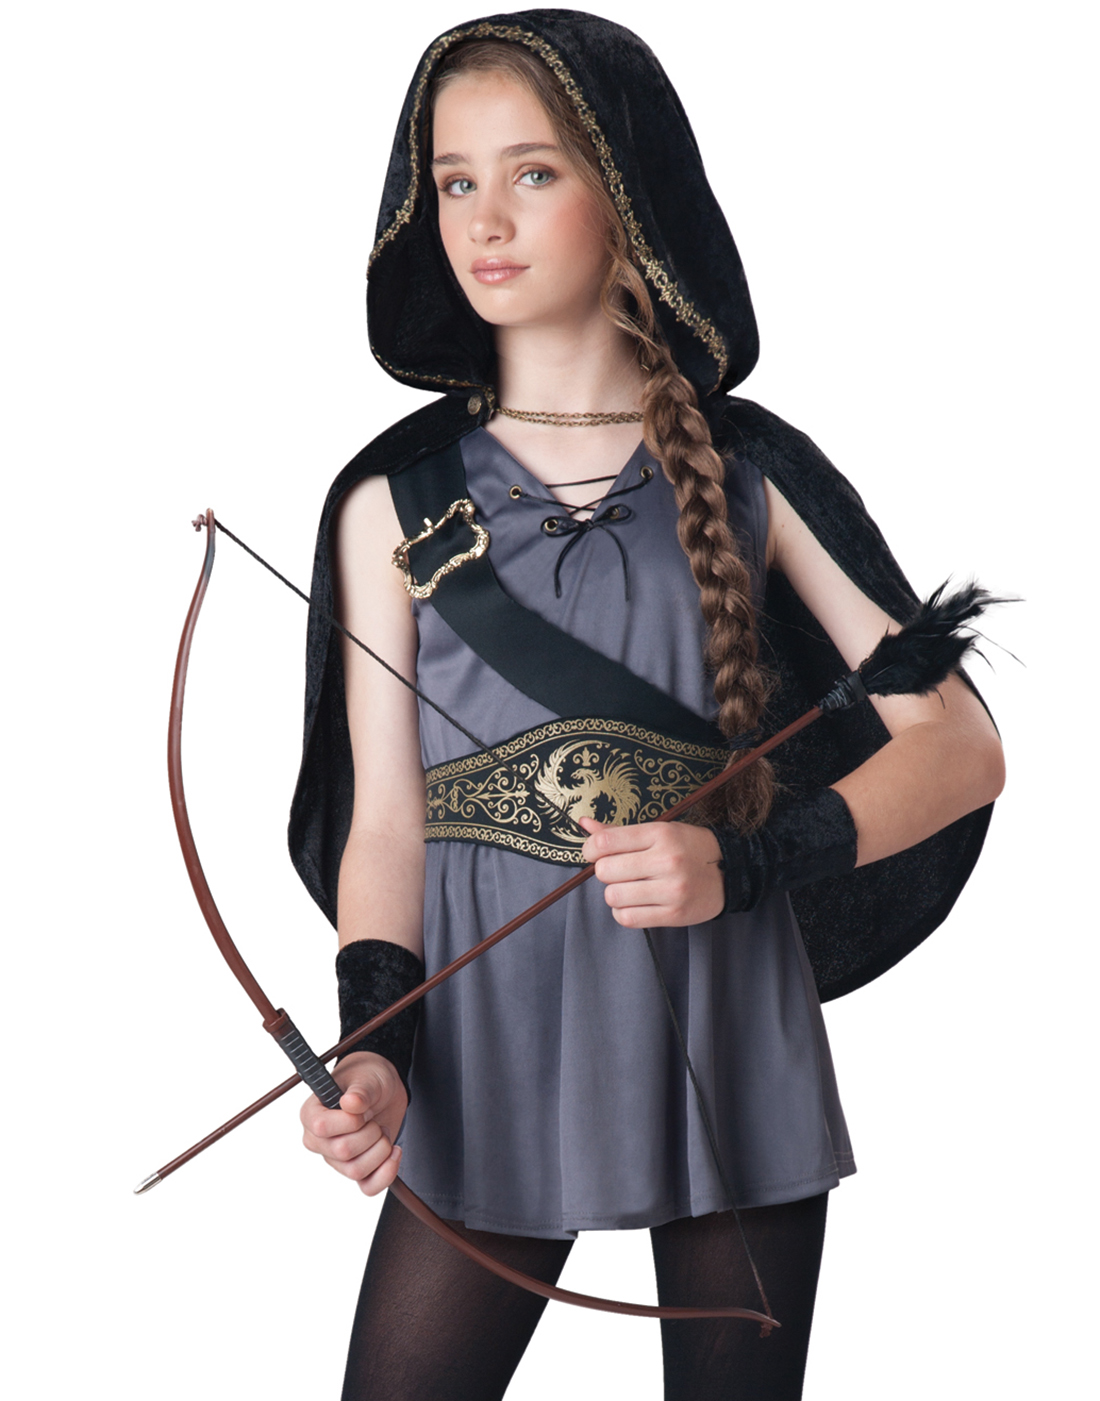 hooded child huntress child halloween costume - walmart